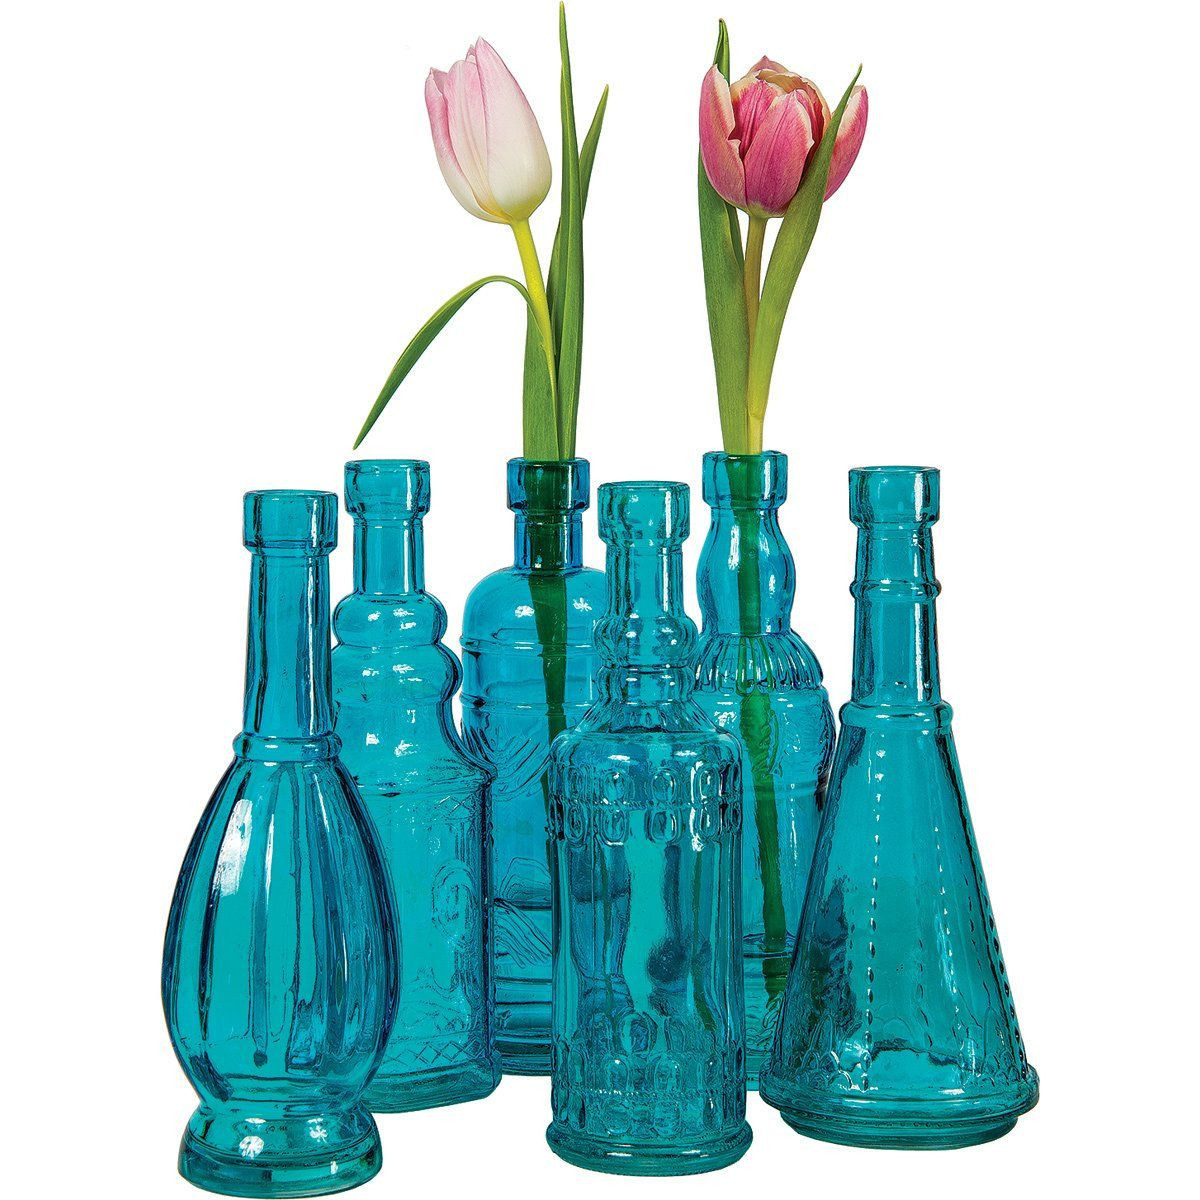 set of small glass vases of small crystal vase photograph luna bazaar small vintage glass bottle pertaining to small crystal vase photograph luna bazaar small vintage glass bottle set 7 inch turquoise blue of